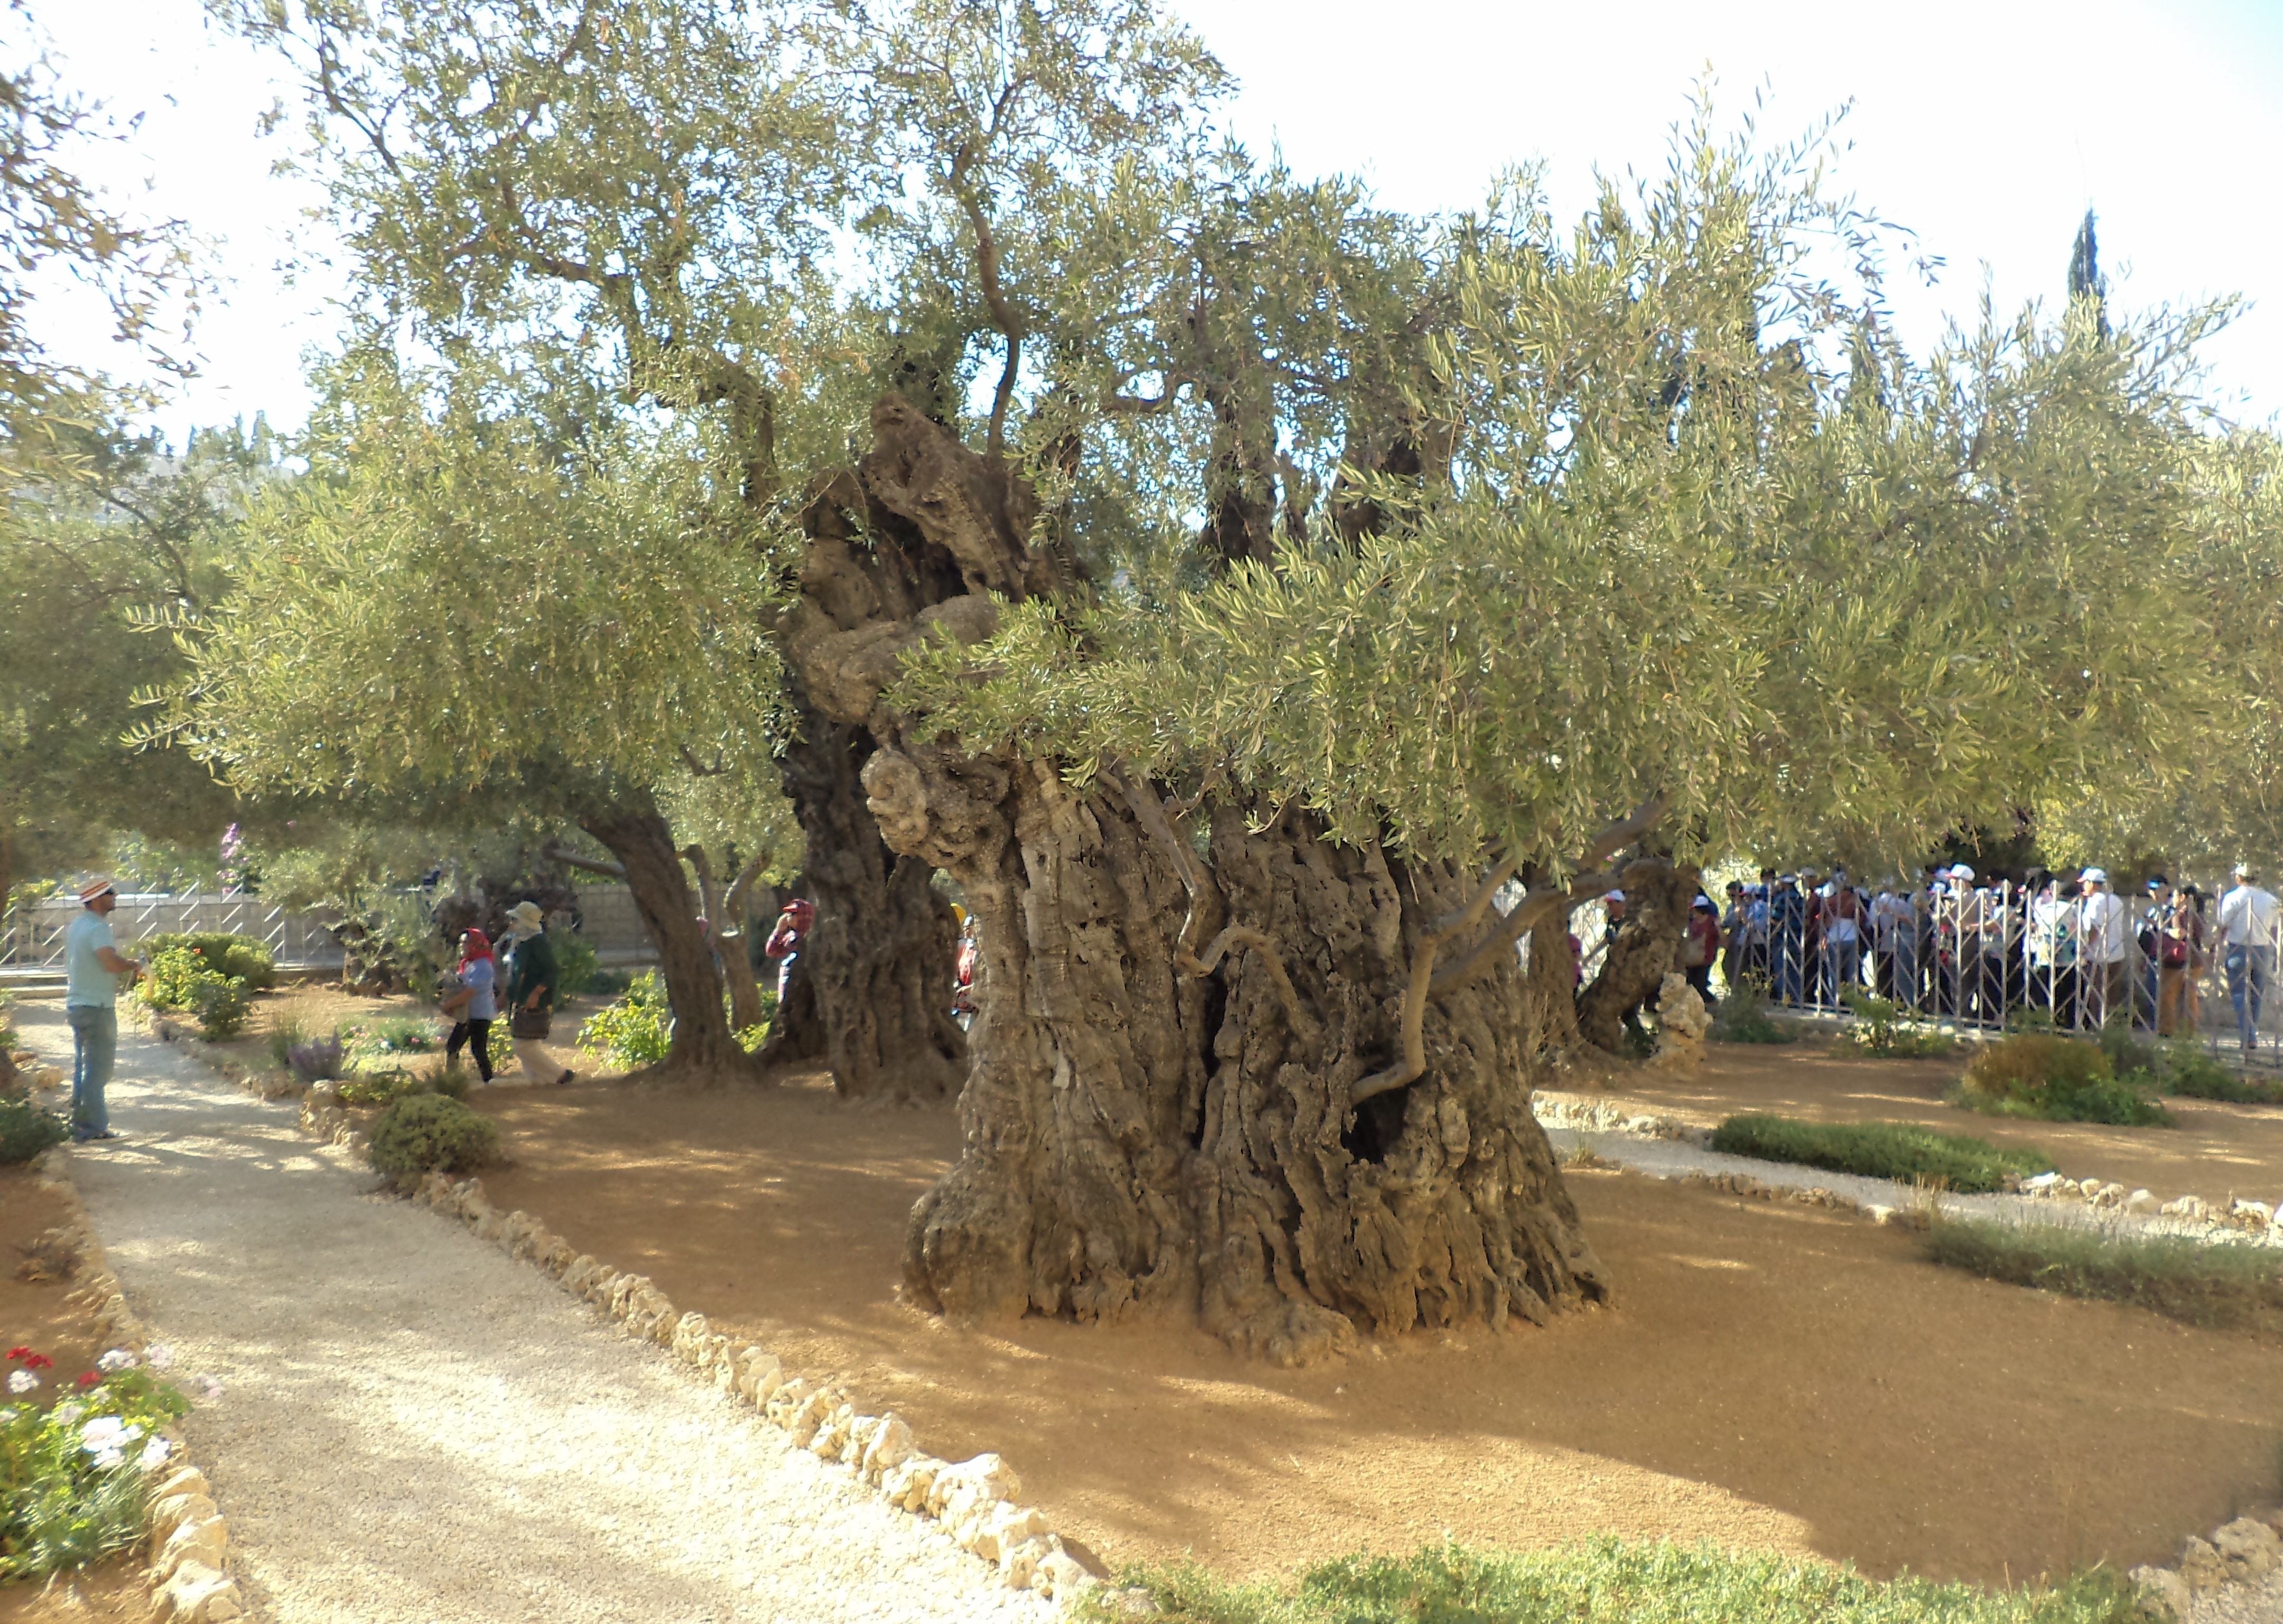 File:One of the oldest olive trees in the Garden of Gethsemane..jpg ...